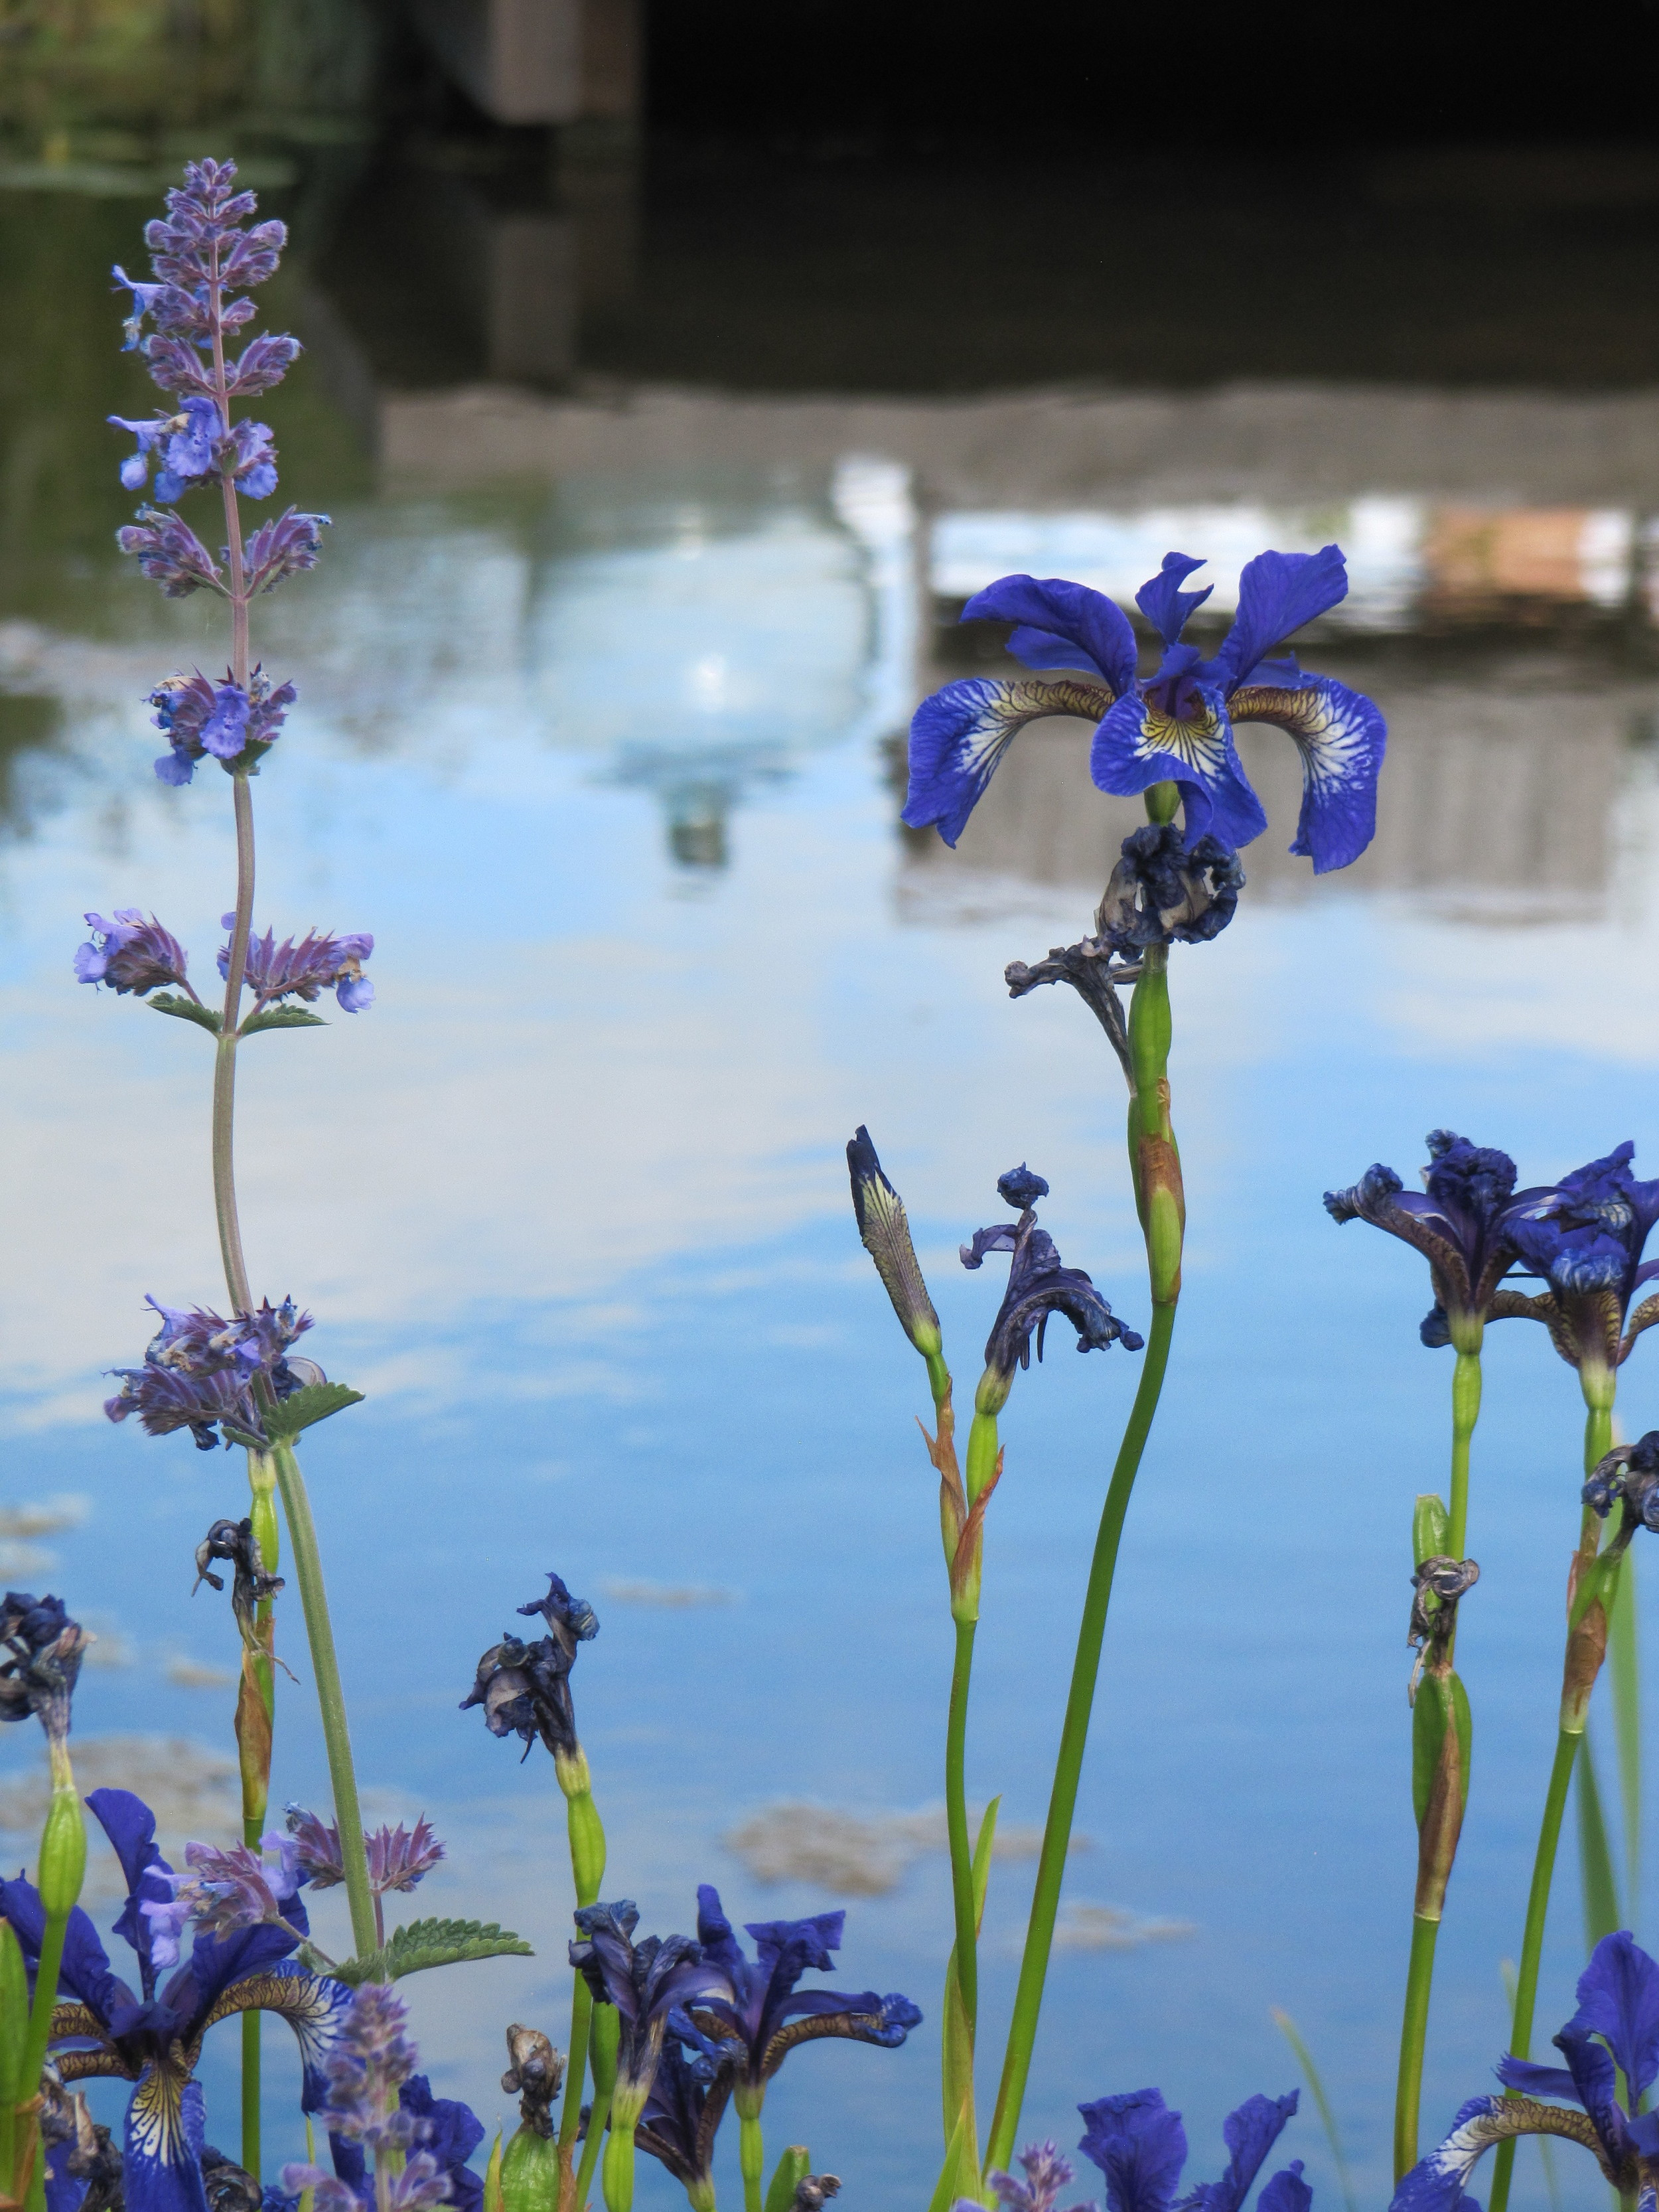 Iris sibirica reflected in an open garden pond.